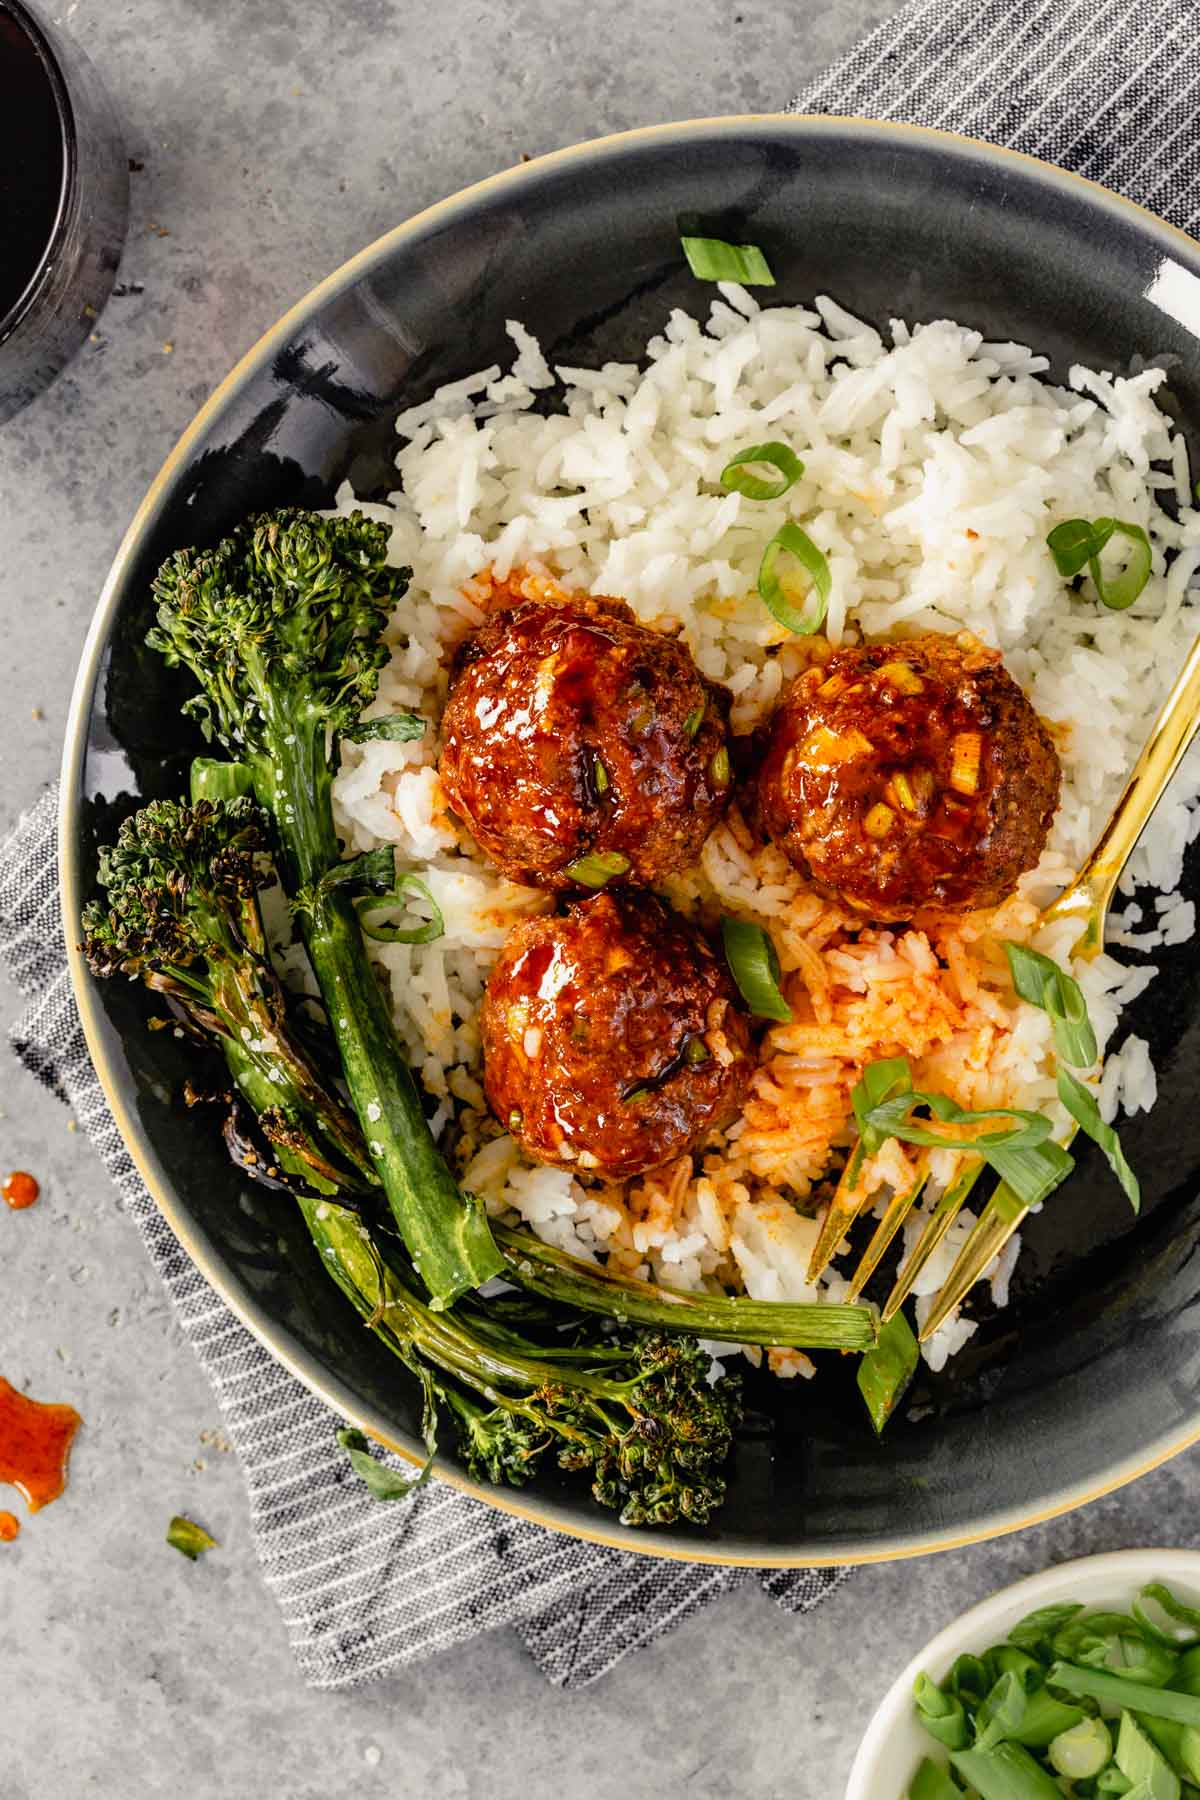 glazed meatballs on a plate of white rice with charred broccolini on the side